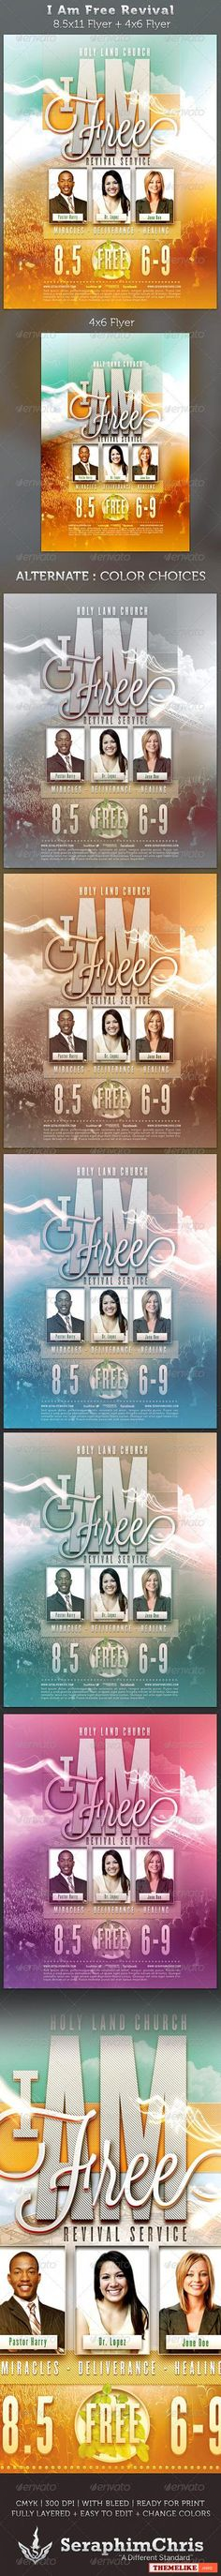 GraphicRiver - I Am Free Revival Flyer Full Page and 4x6 Template